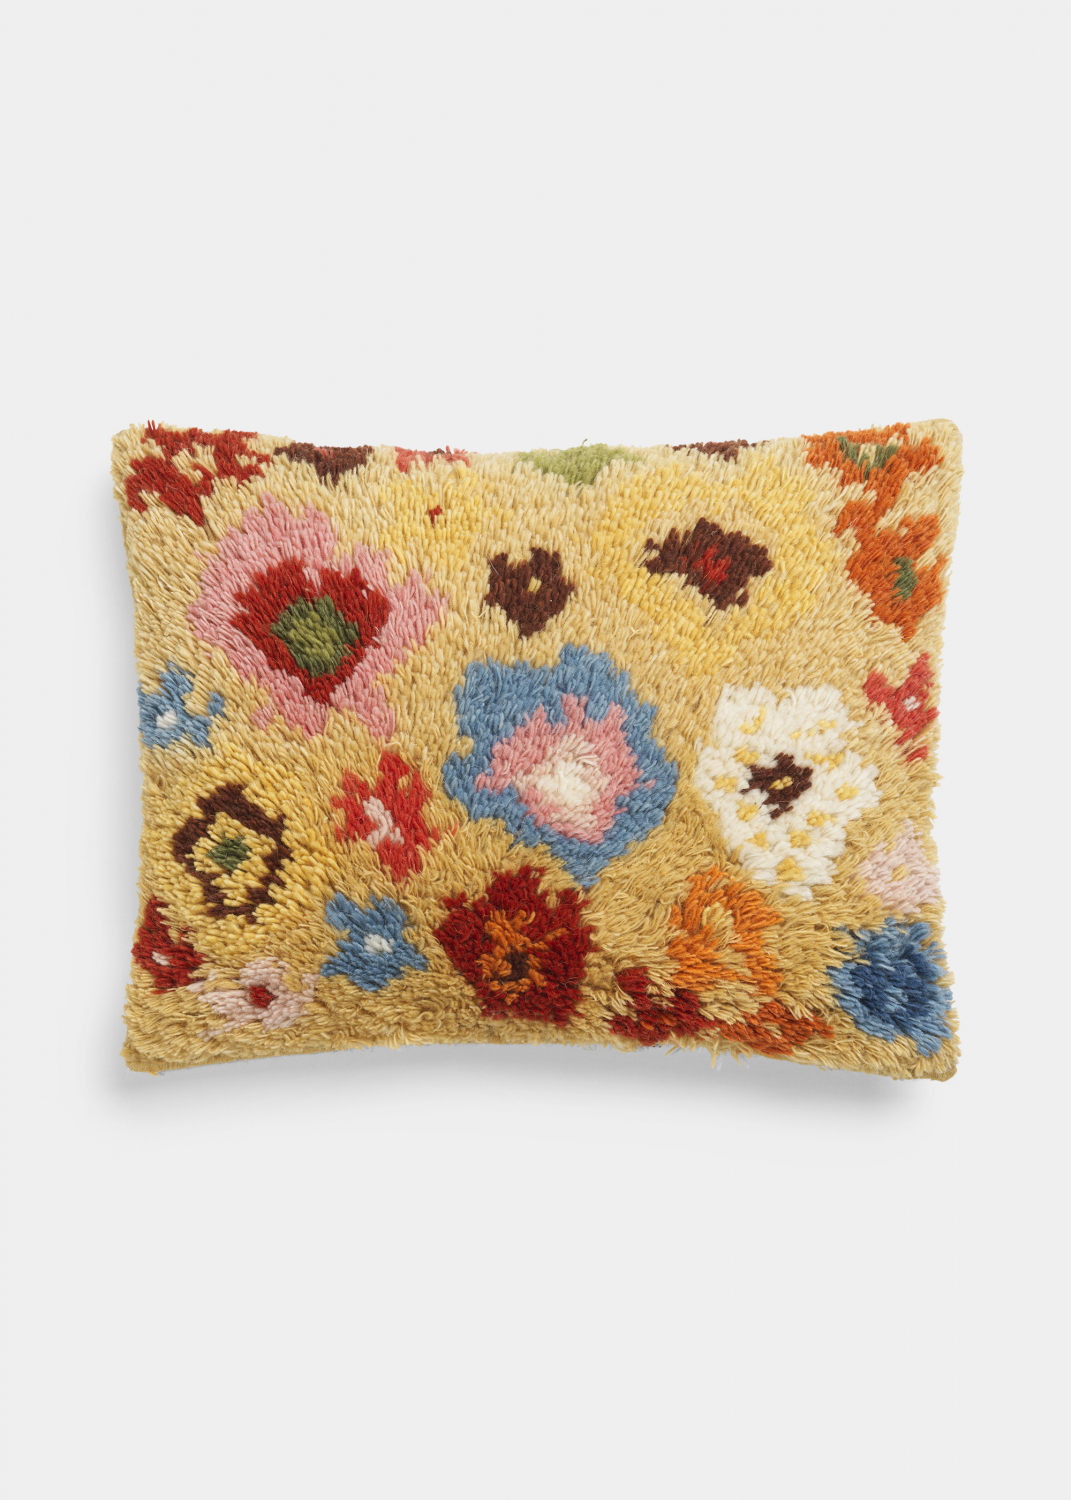 Cushions - Flower Nepal pillow (30x40)